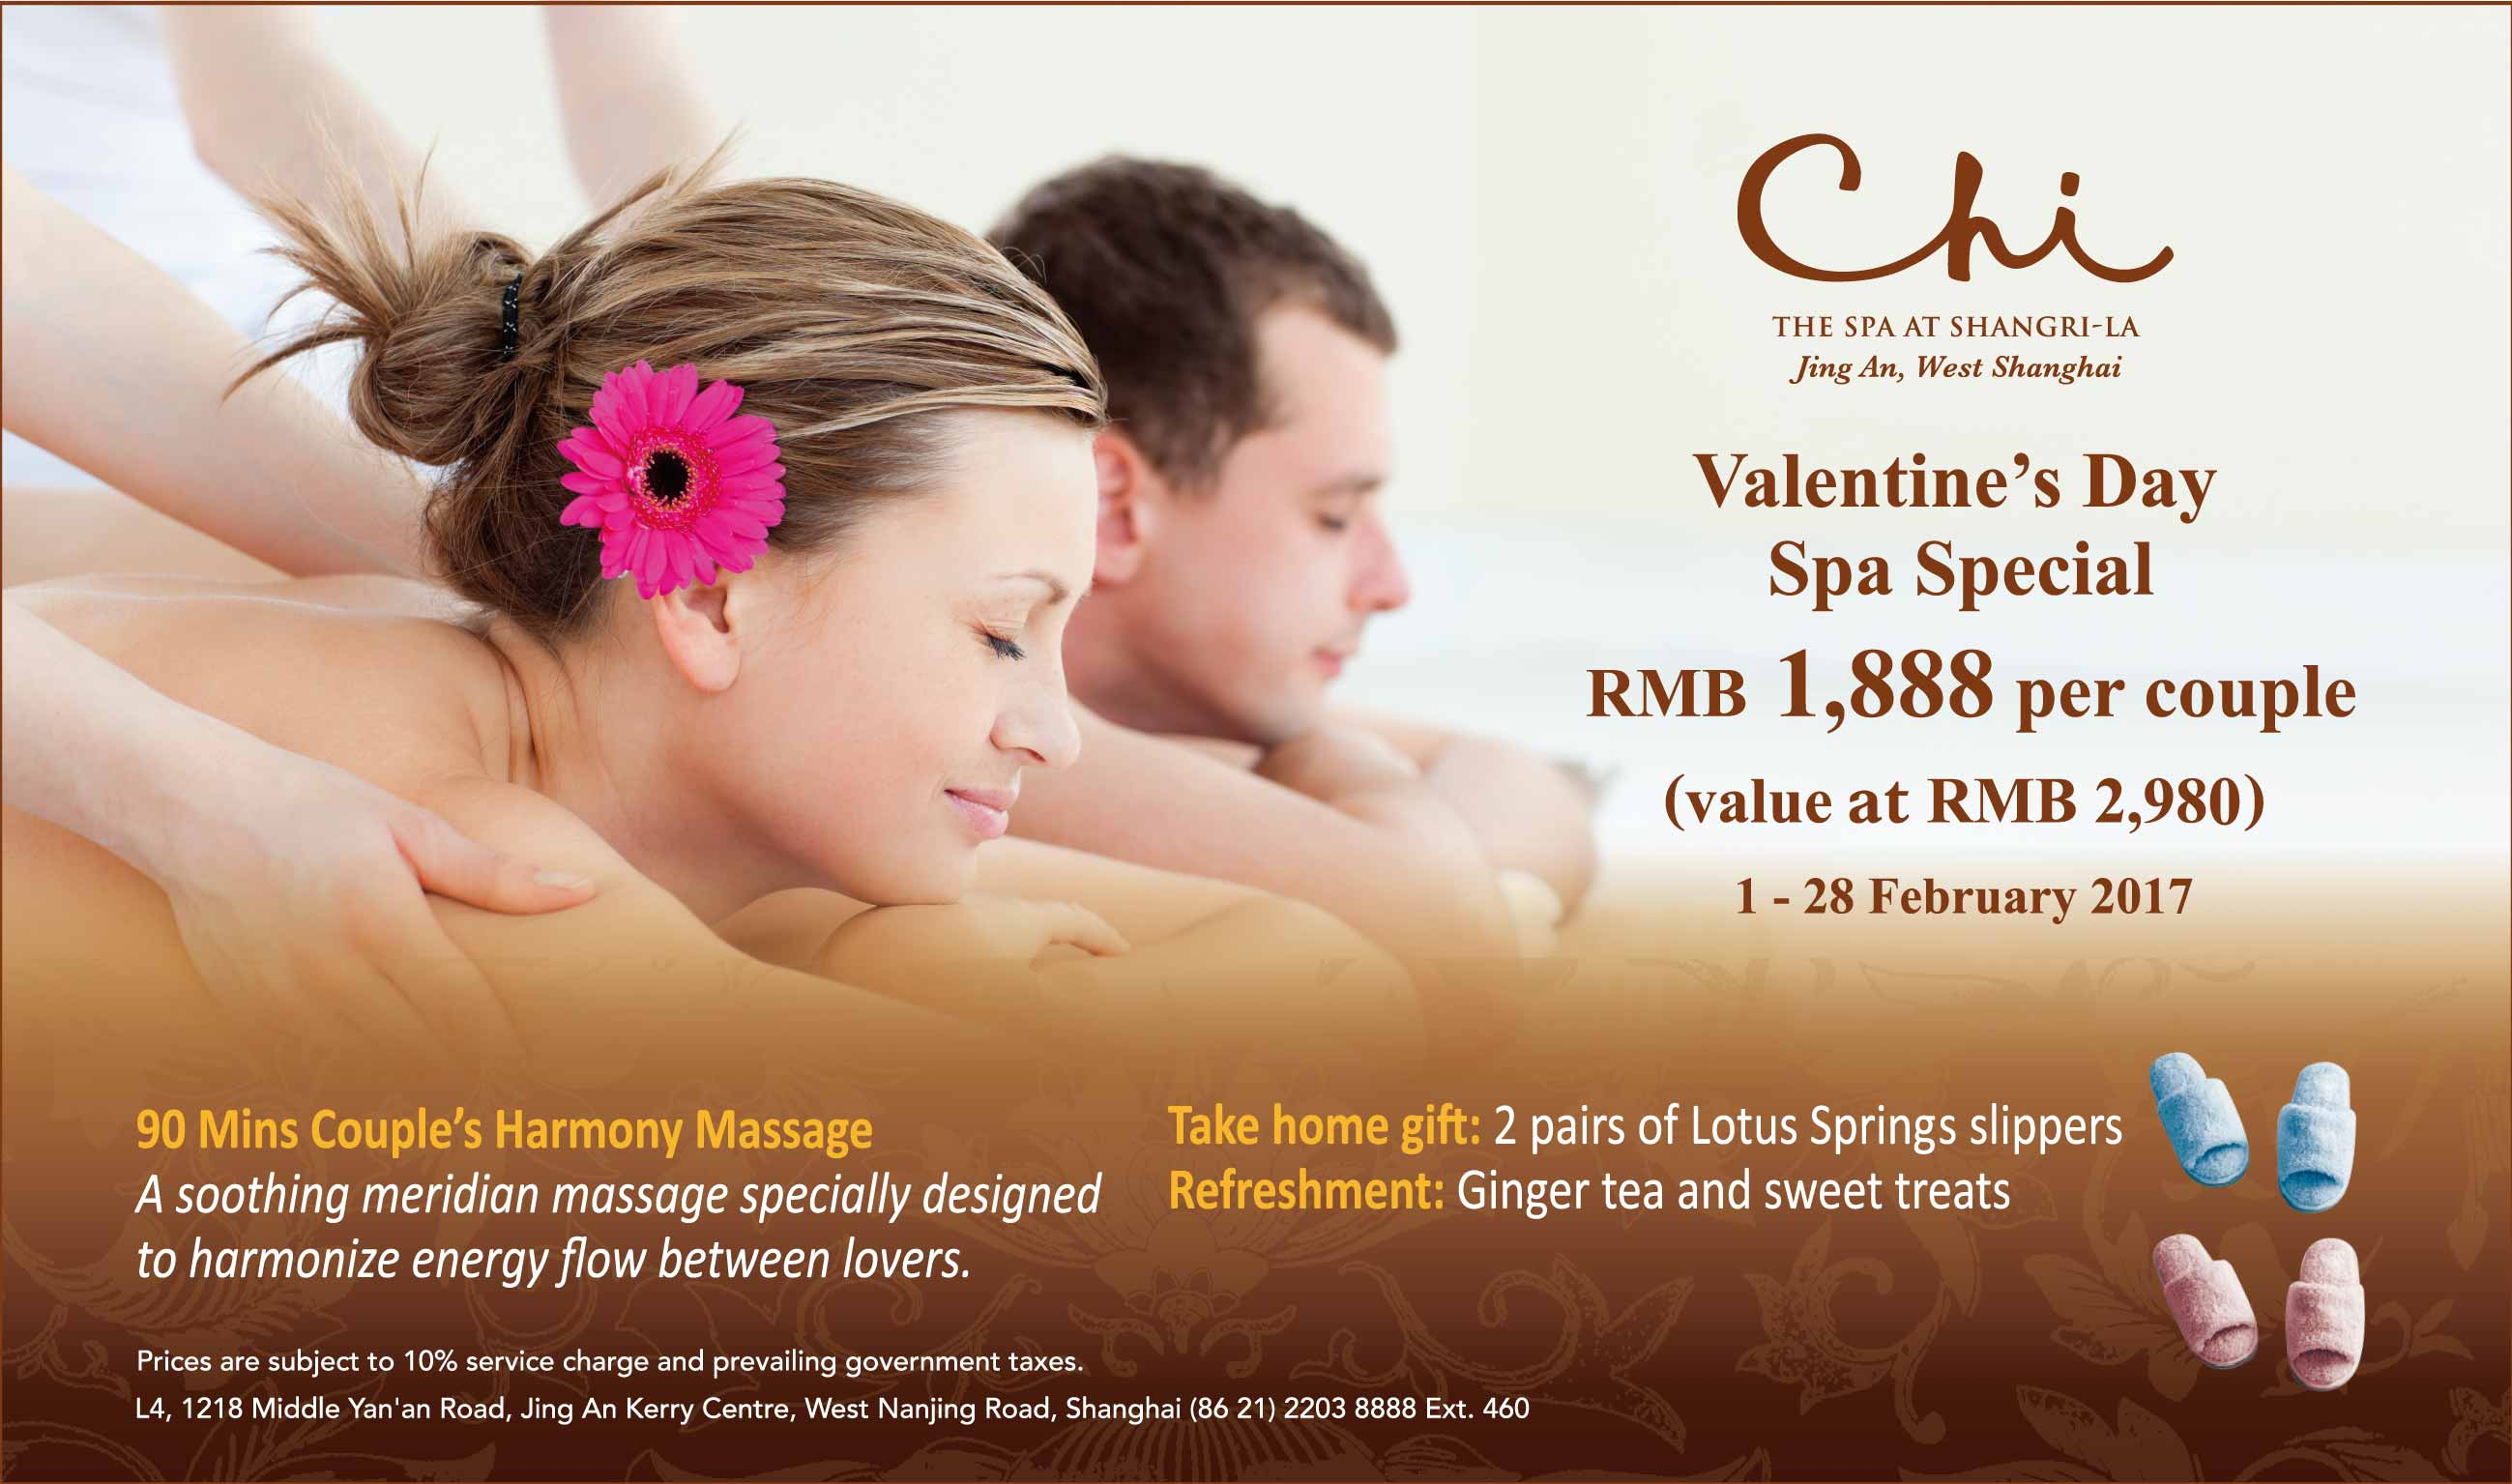 saint valentine s day spa special chi the spa at jing an shangri la west shanghai at chi. Black Bedroom Furniture Sets. Home Design Ideas